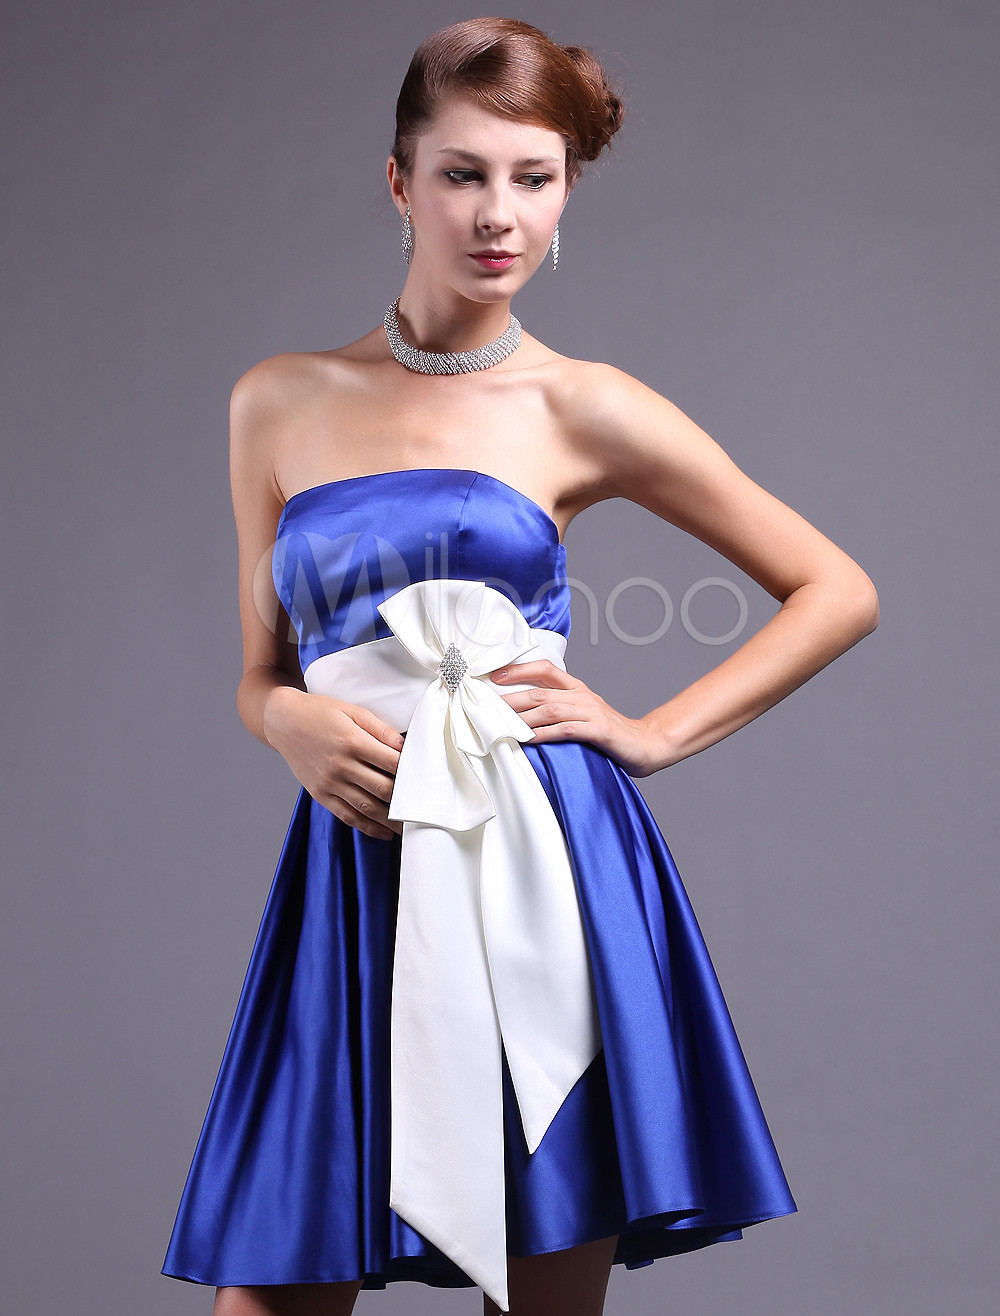 Royal Blue Satin Bow Sash Strapless Prom Dress